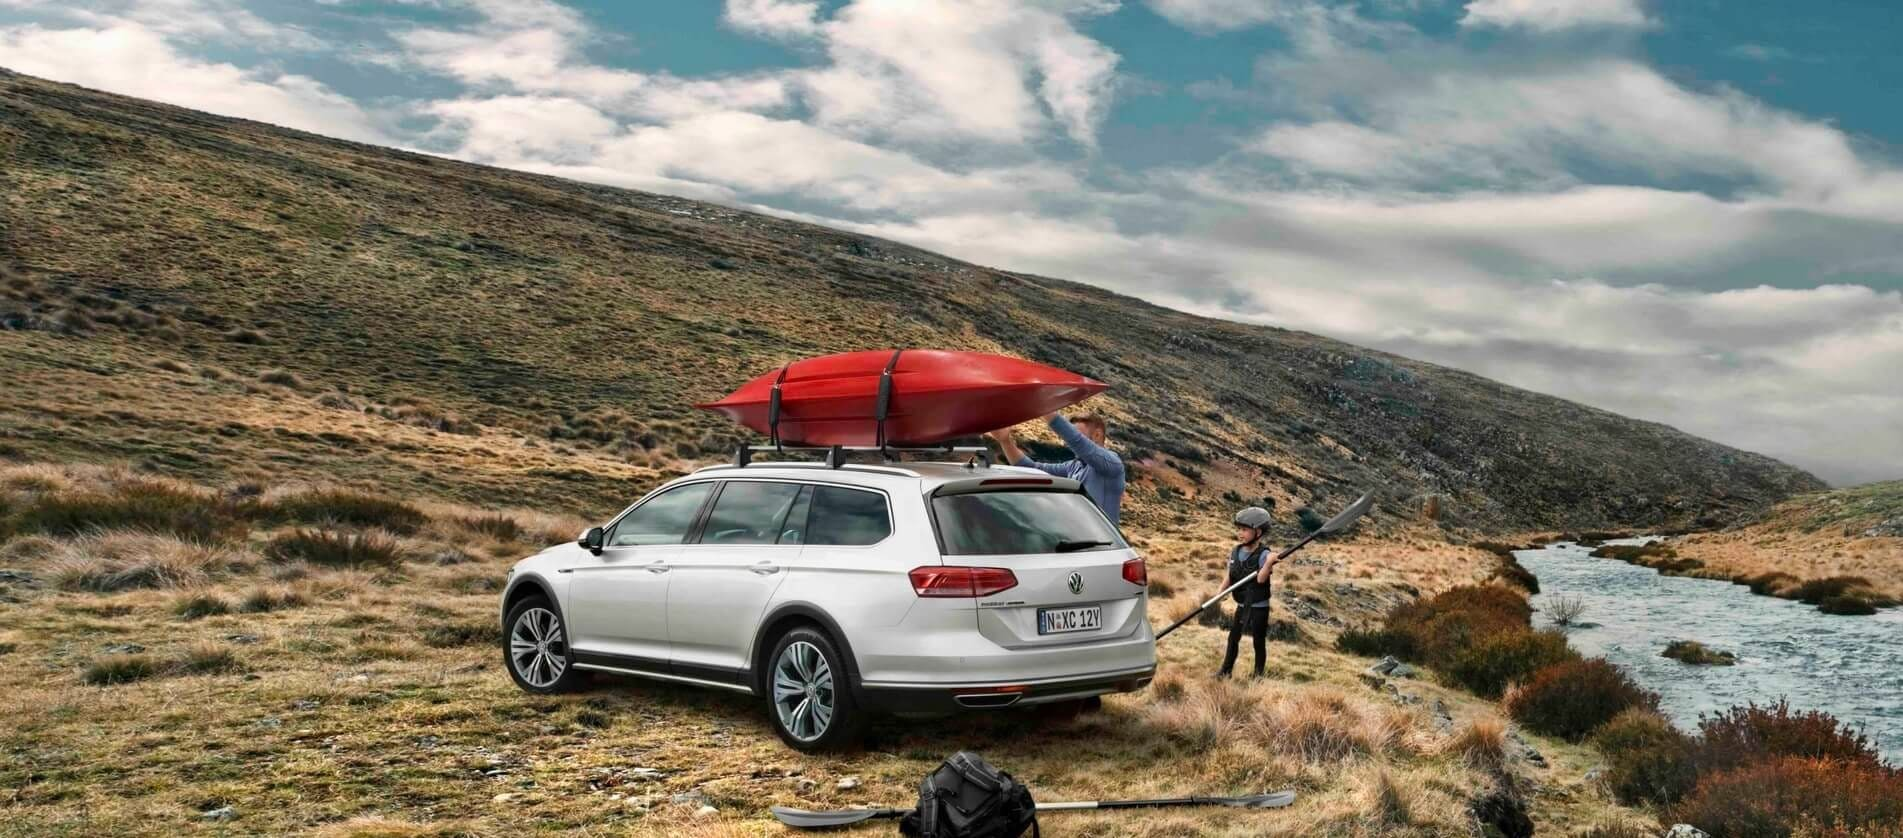 Passat alltrack accessories